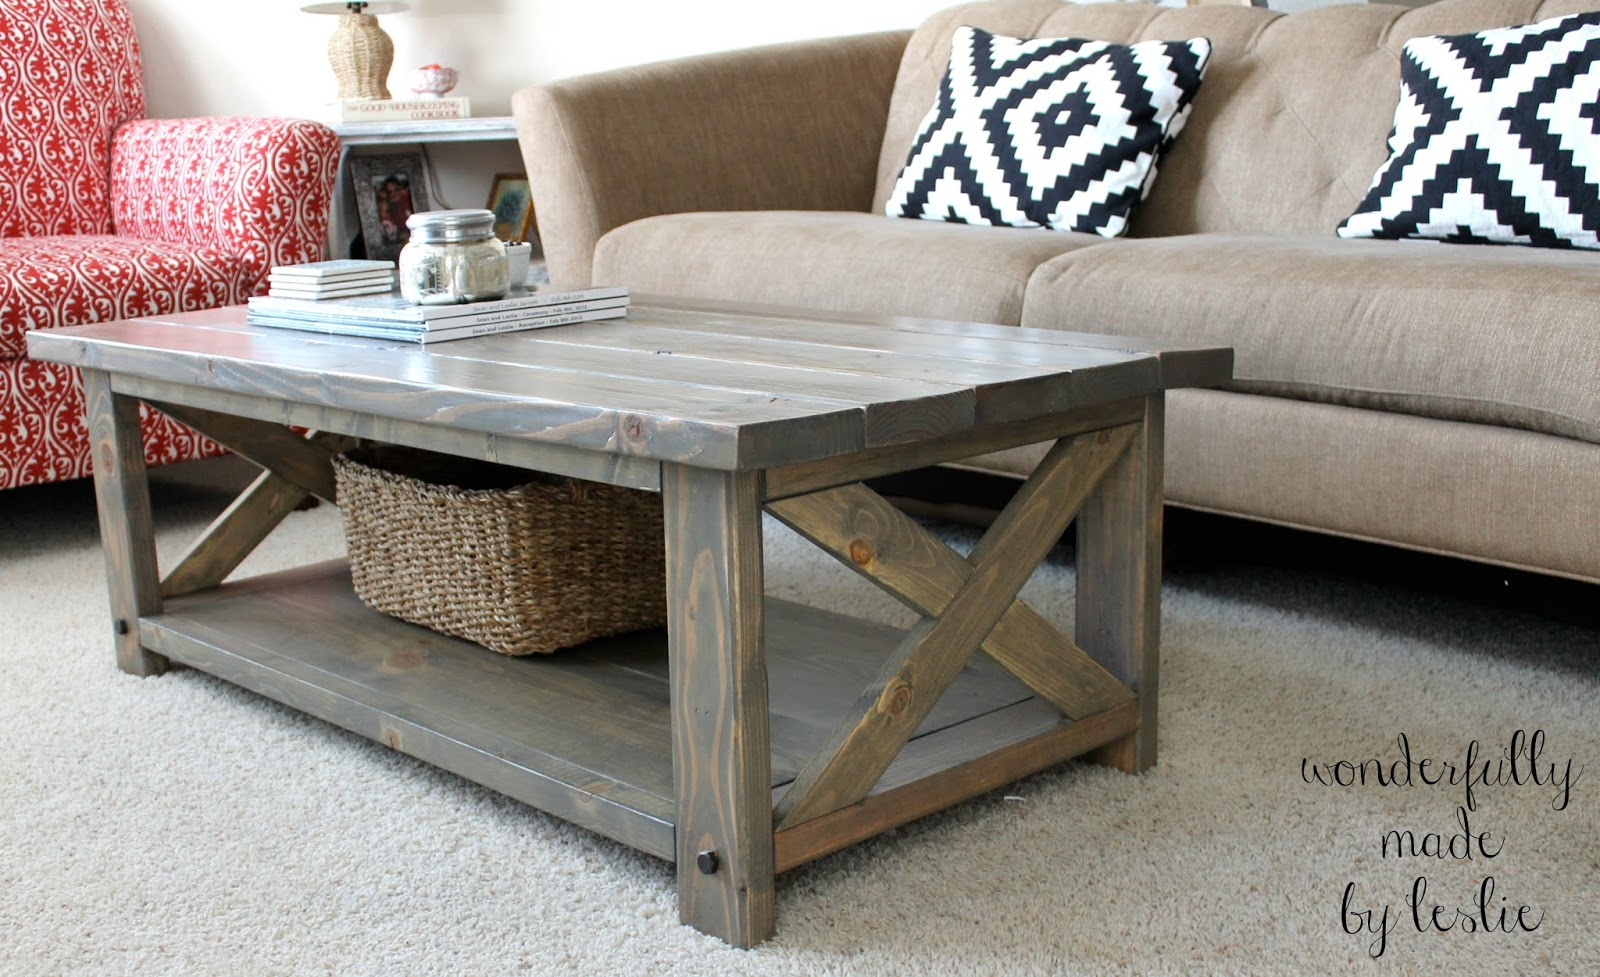 Wonderfully Made: Finished {DIY} Coffee Table